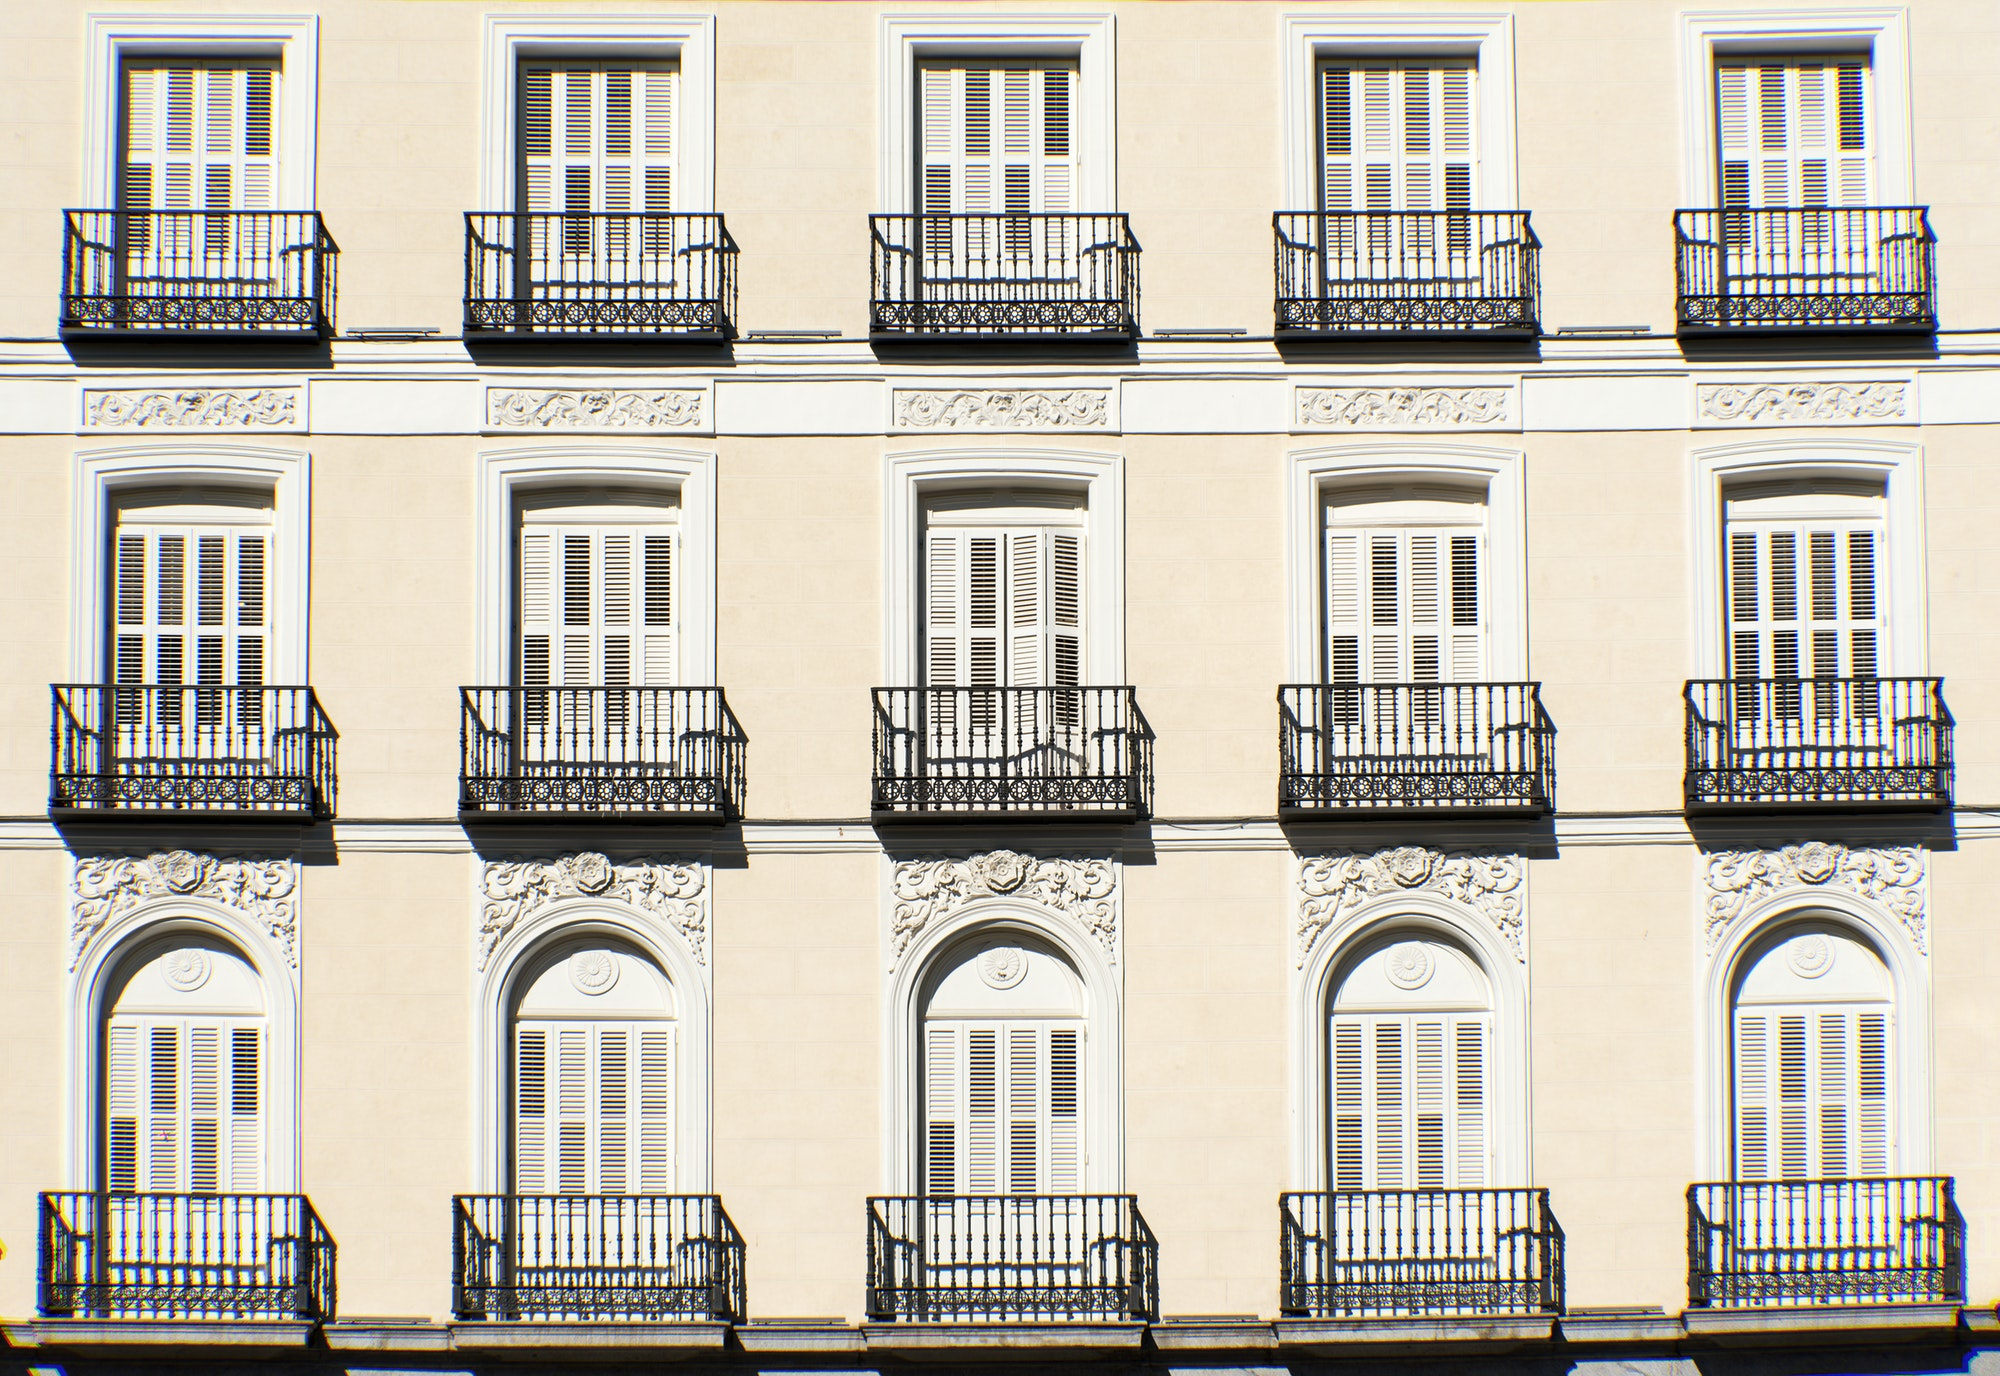 Spanish property prices up in Q2